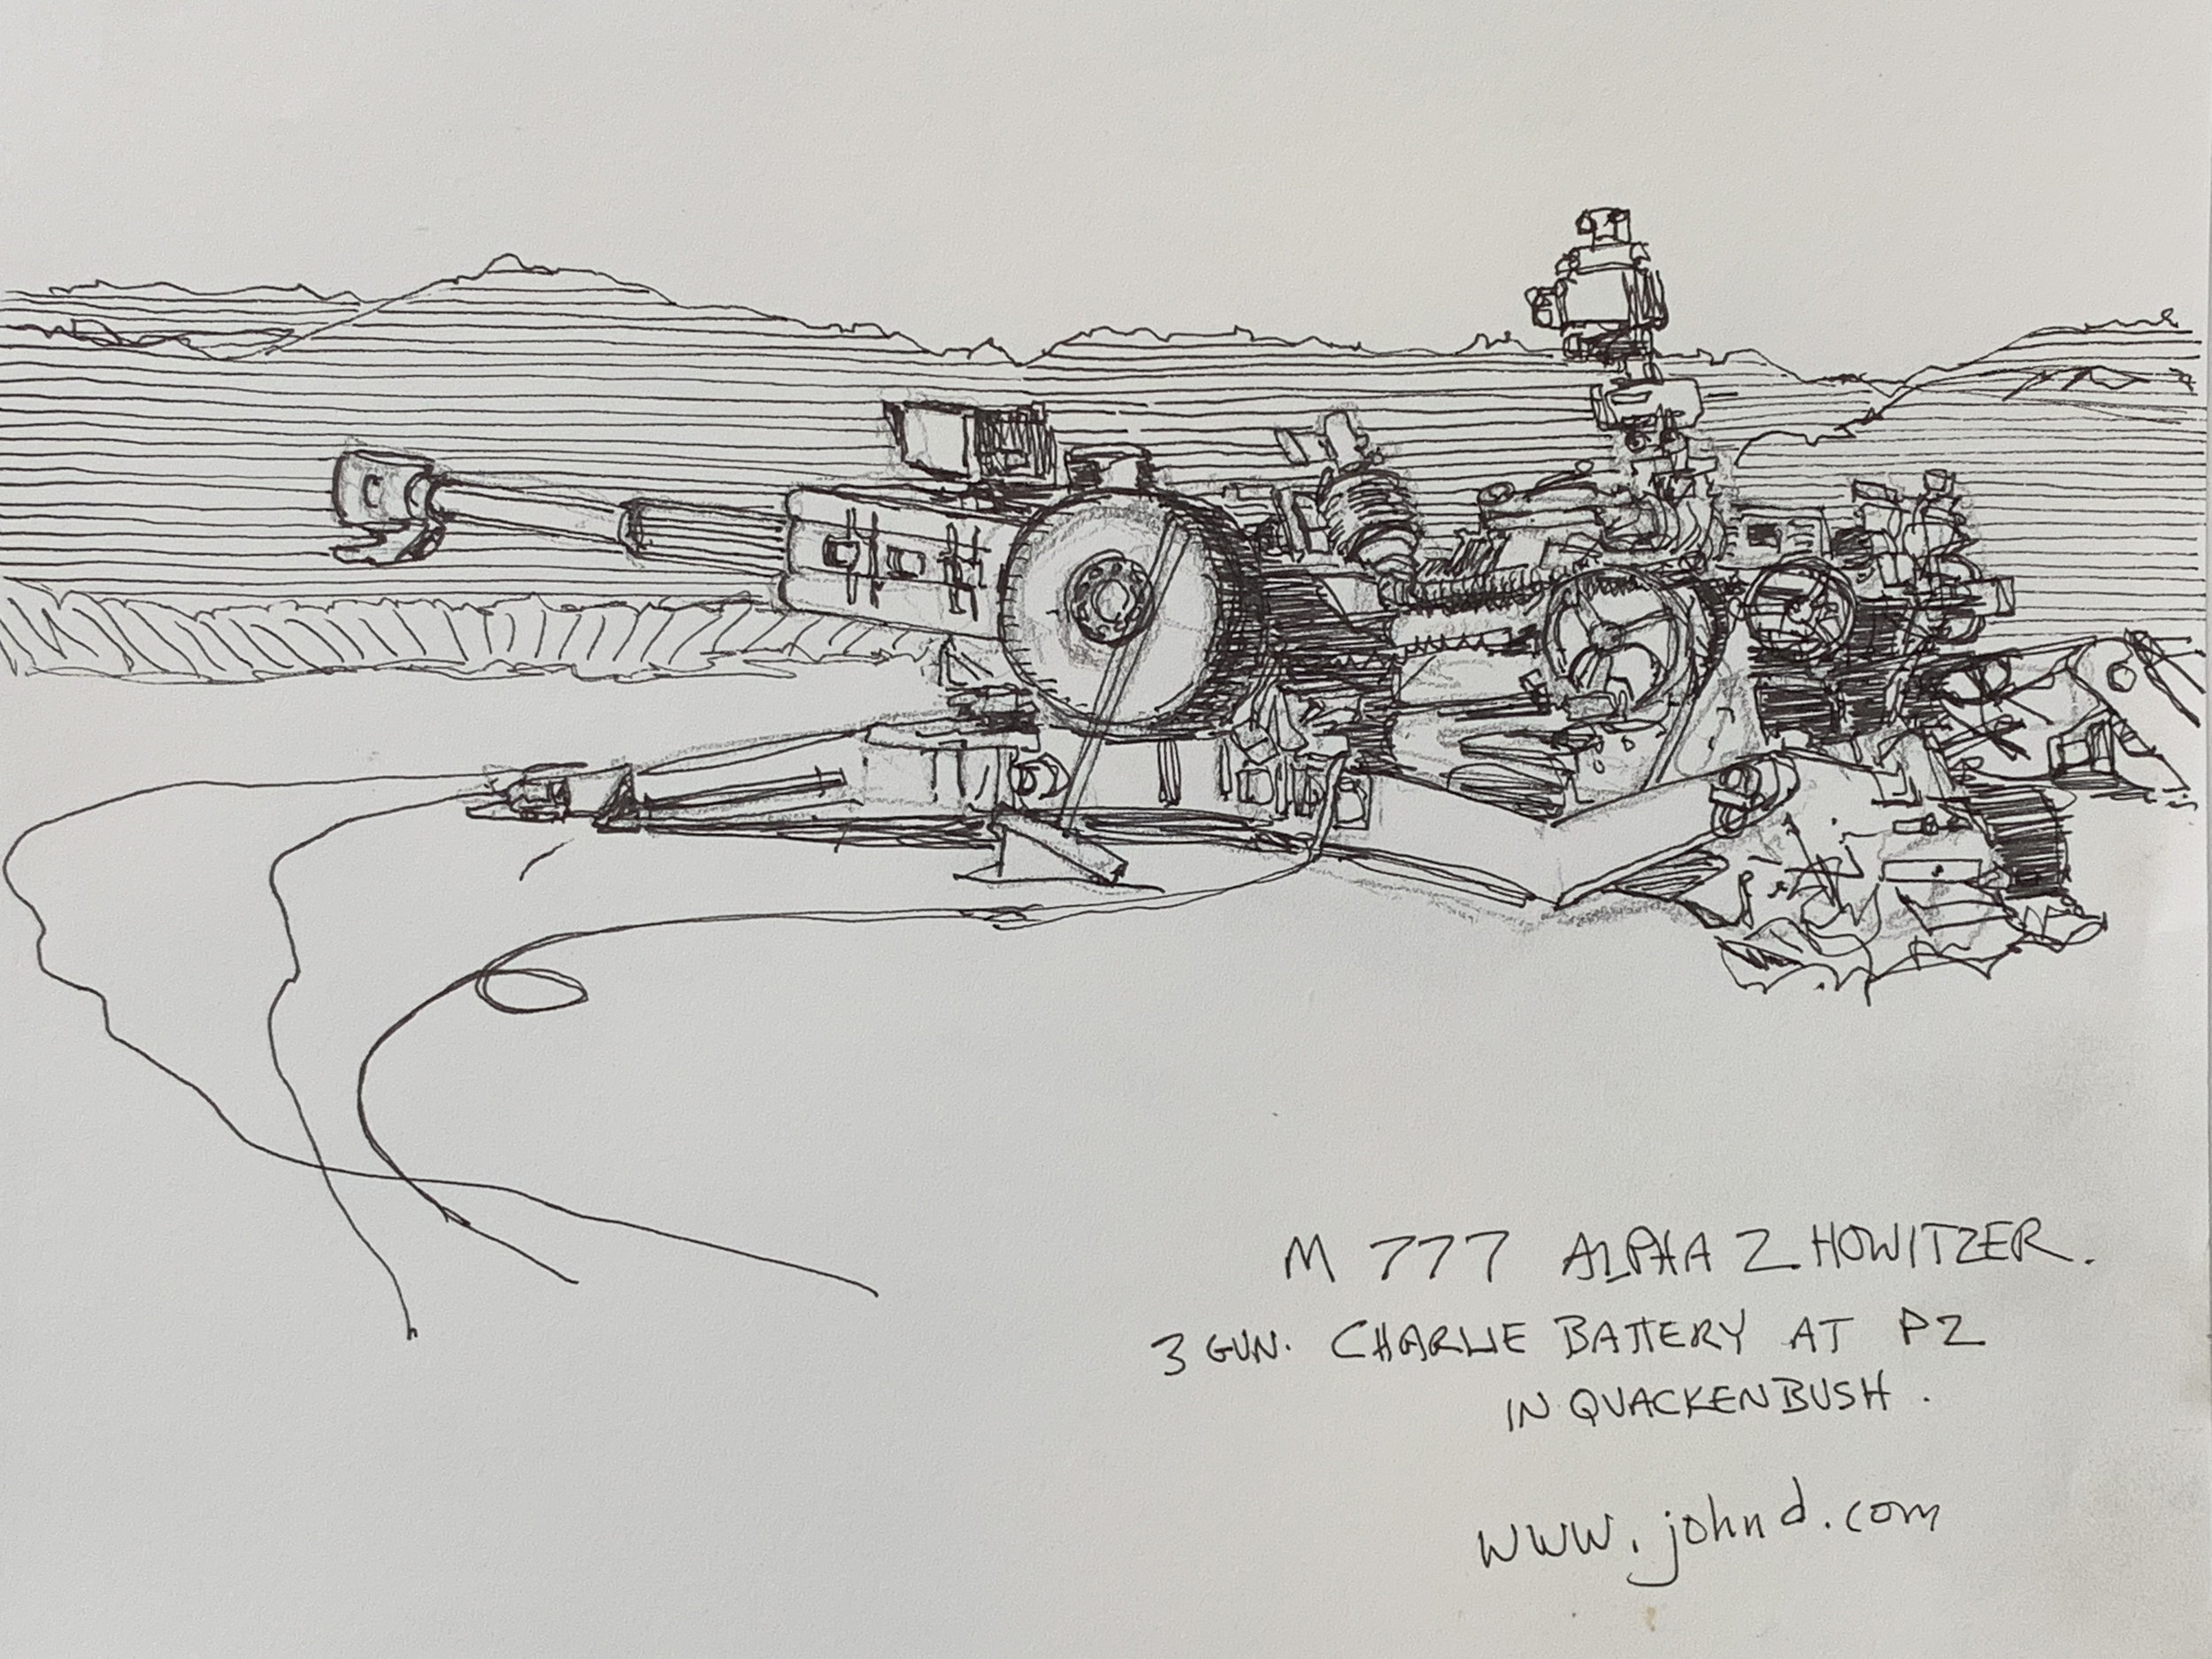 M777 Alpha 2 155mm Howitzer from Charlie Battery 1/11